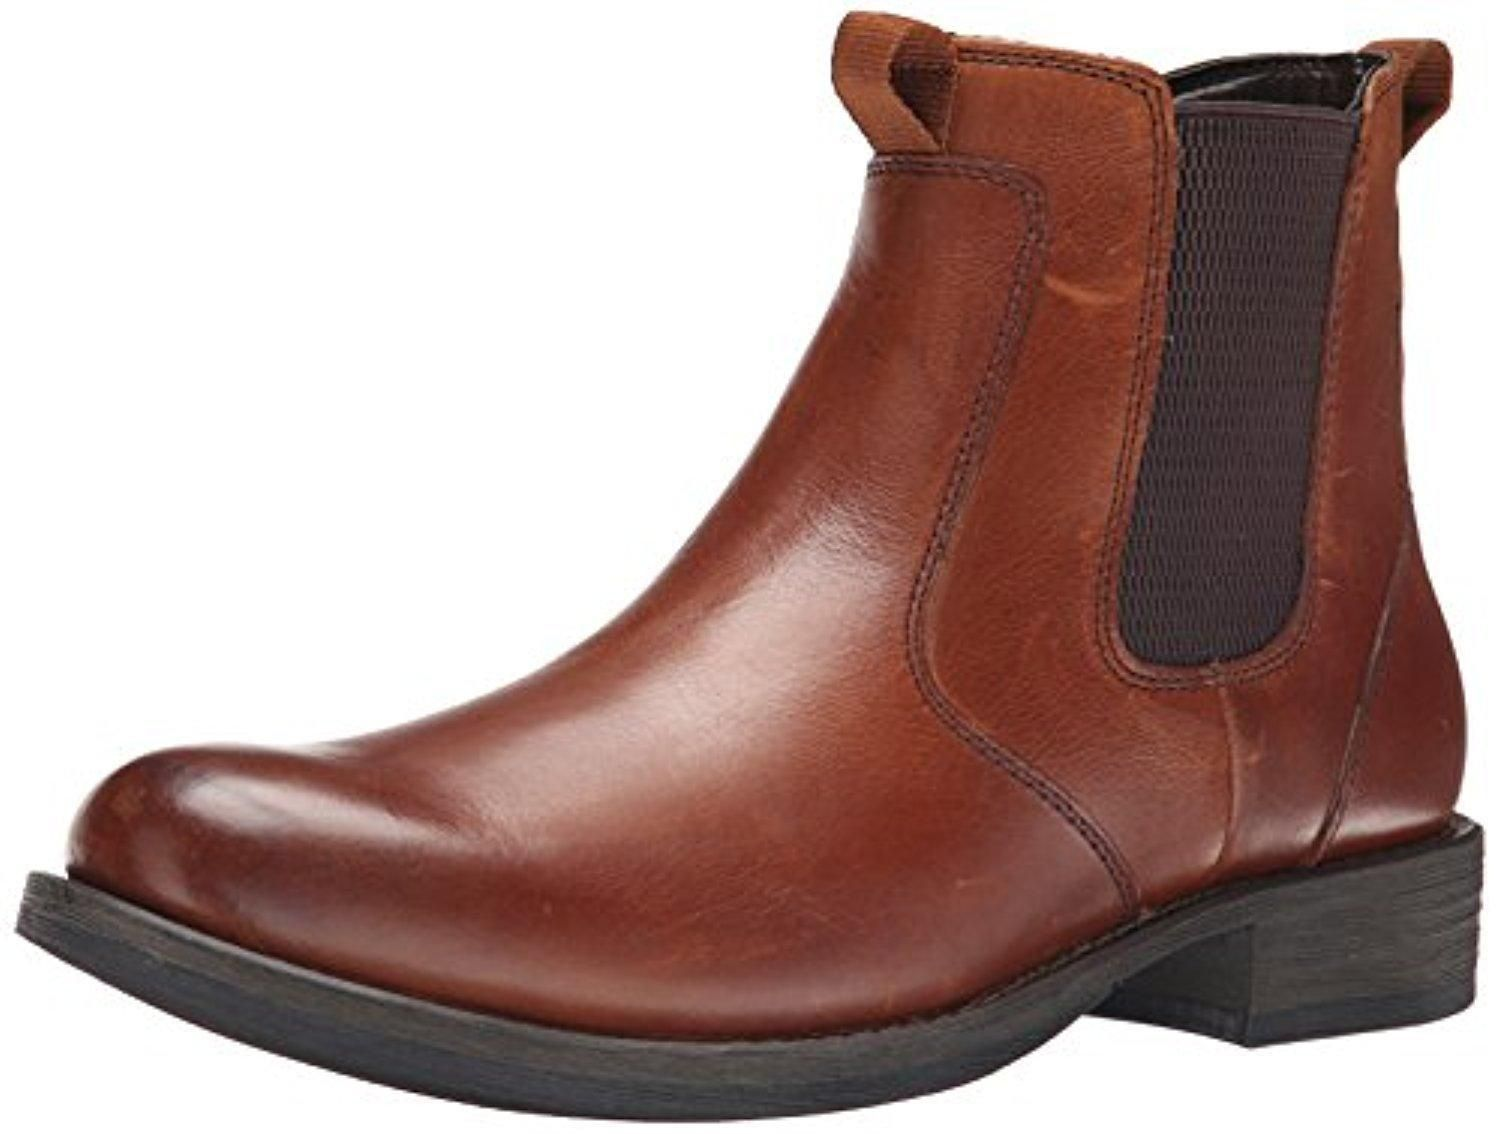 Eastland Men's Daily Double Chelsea Boot, Tan, 9.5 D US - Brought to you